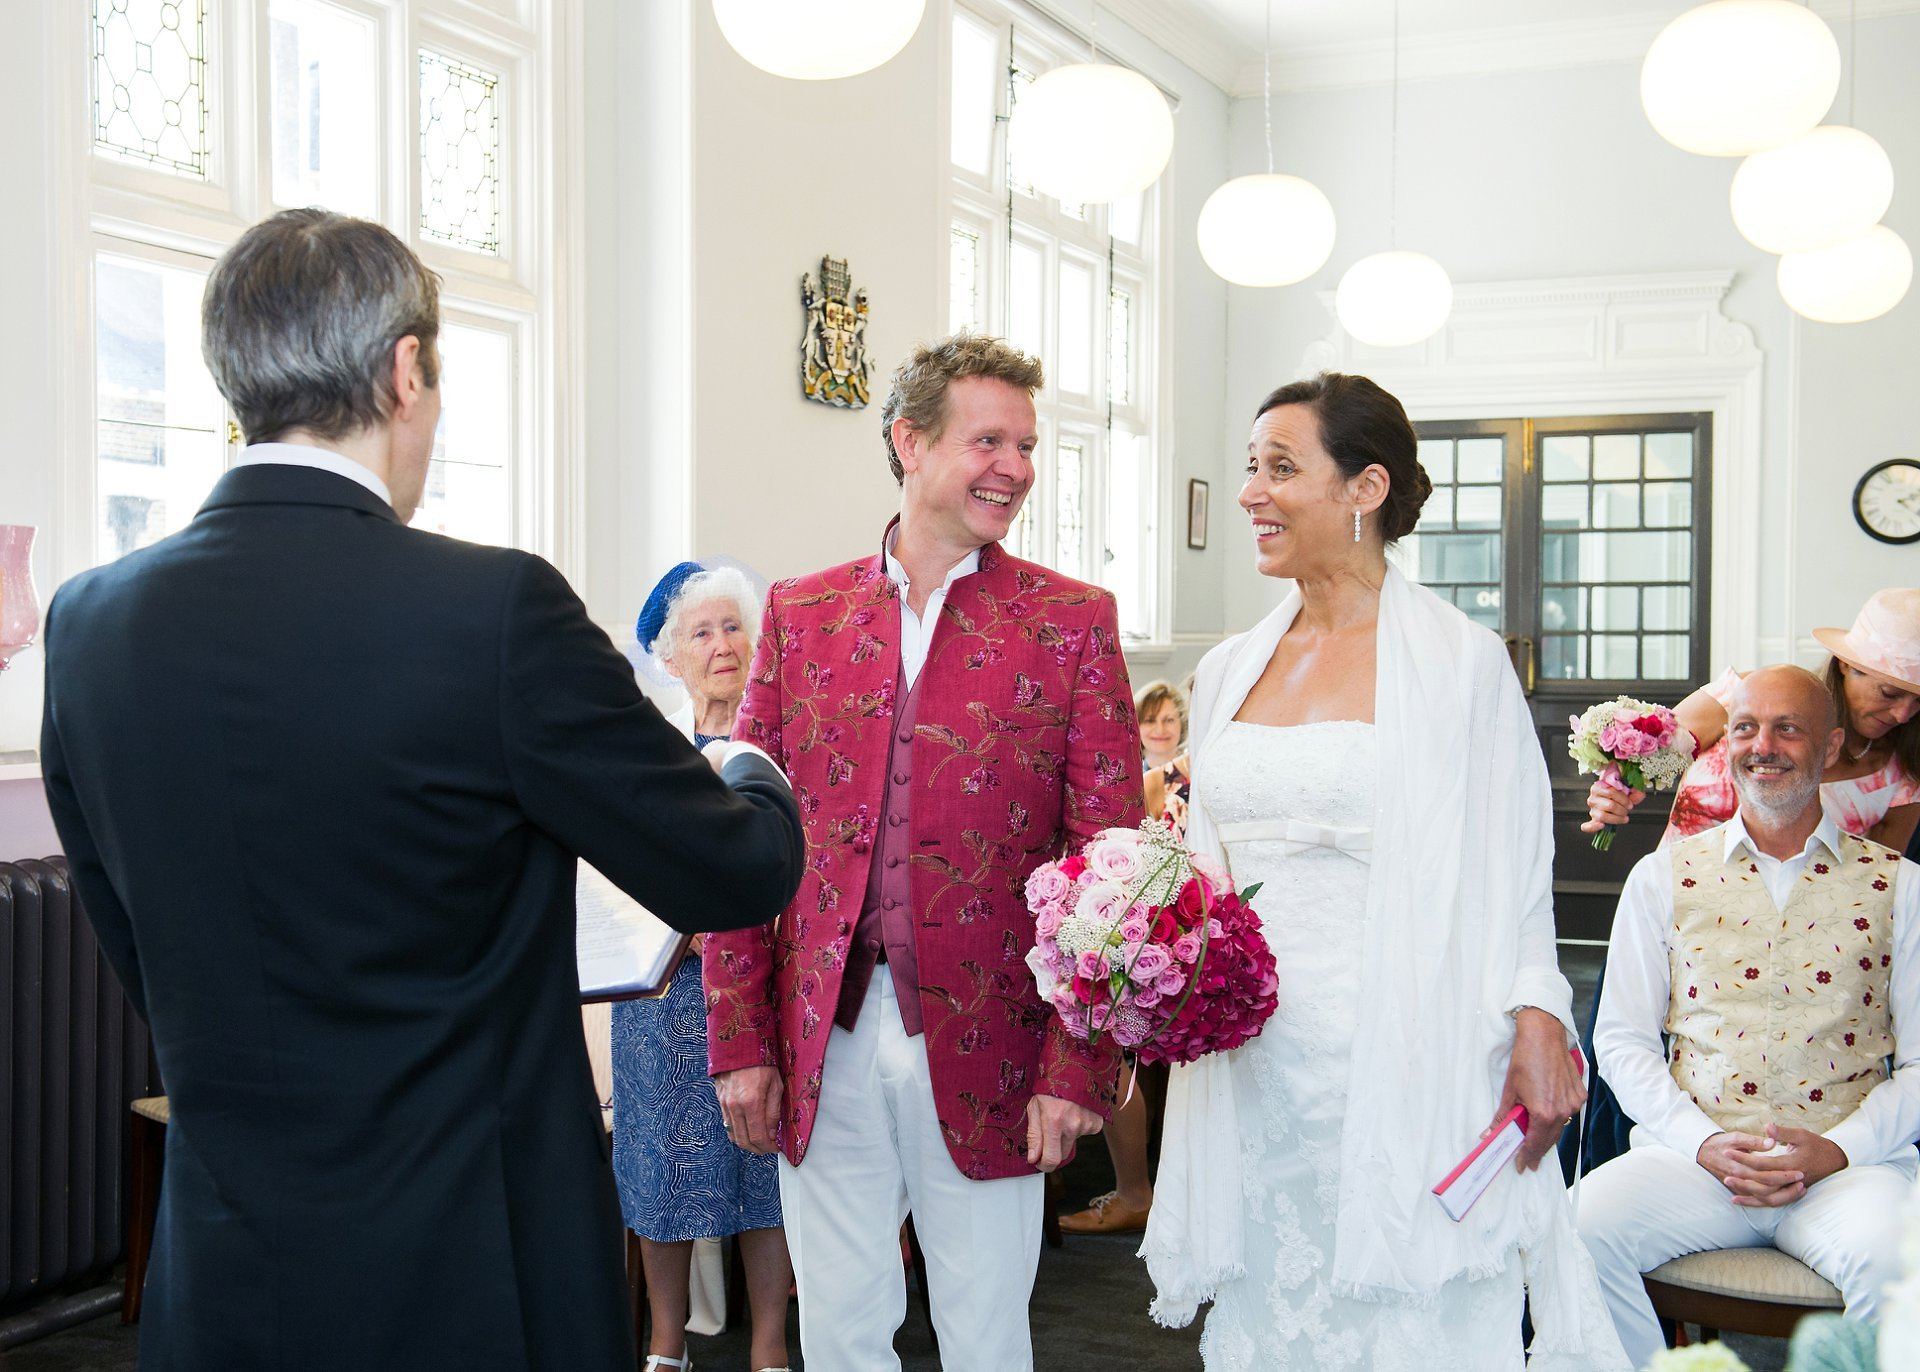 The Registrar greets the bride and groom at the start of their mayfair library wedding